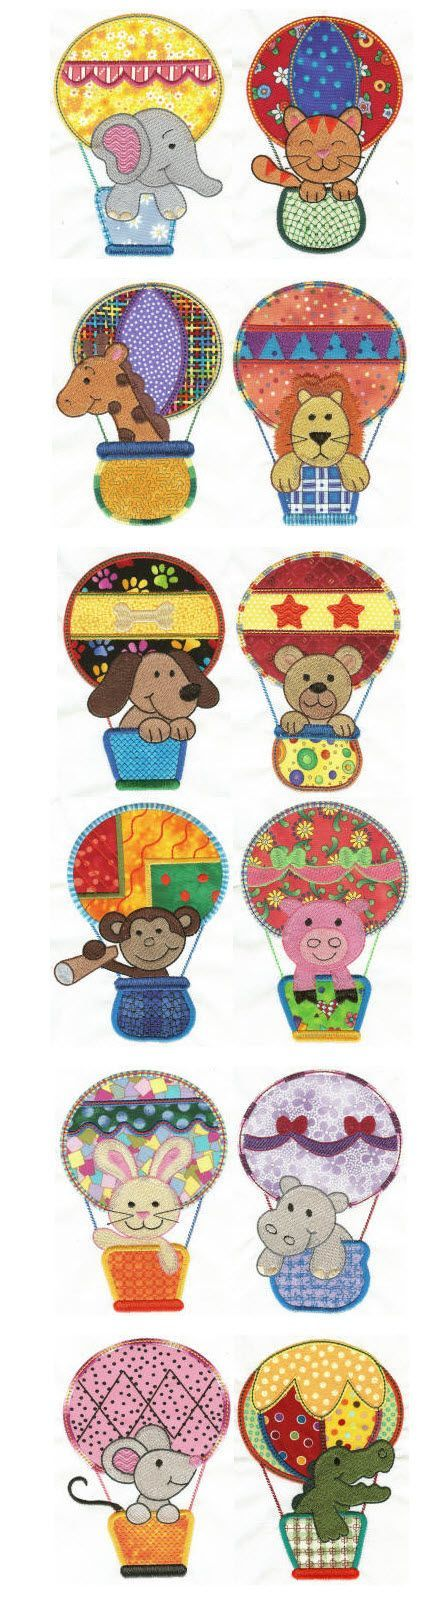 Designs by JuJu Up Up and Away Applique machine embroidery designs: